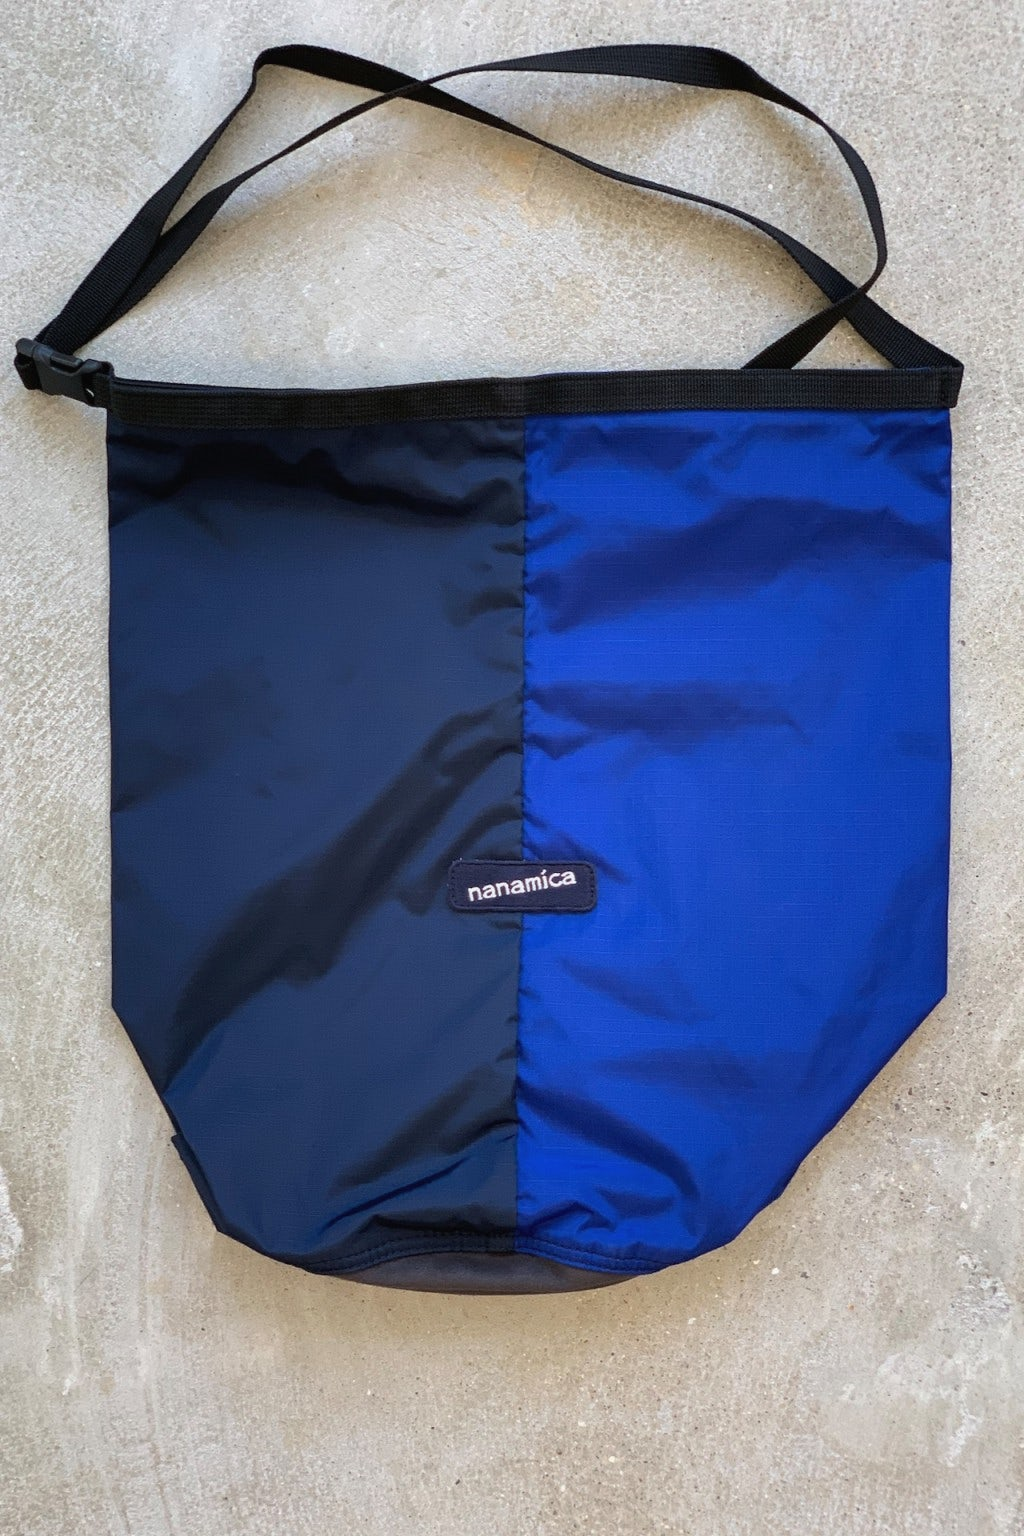 Nanamica Utility Shoulder Bag Small Navy & Blue